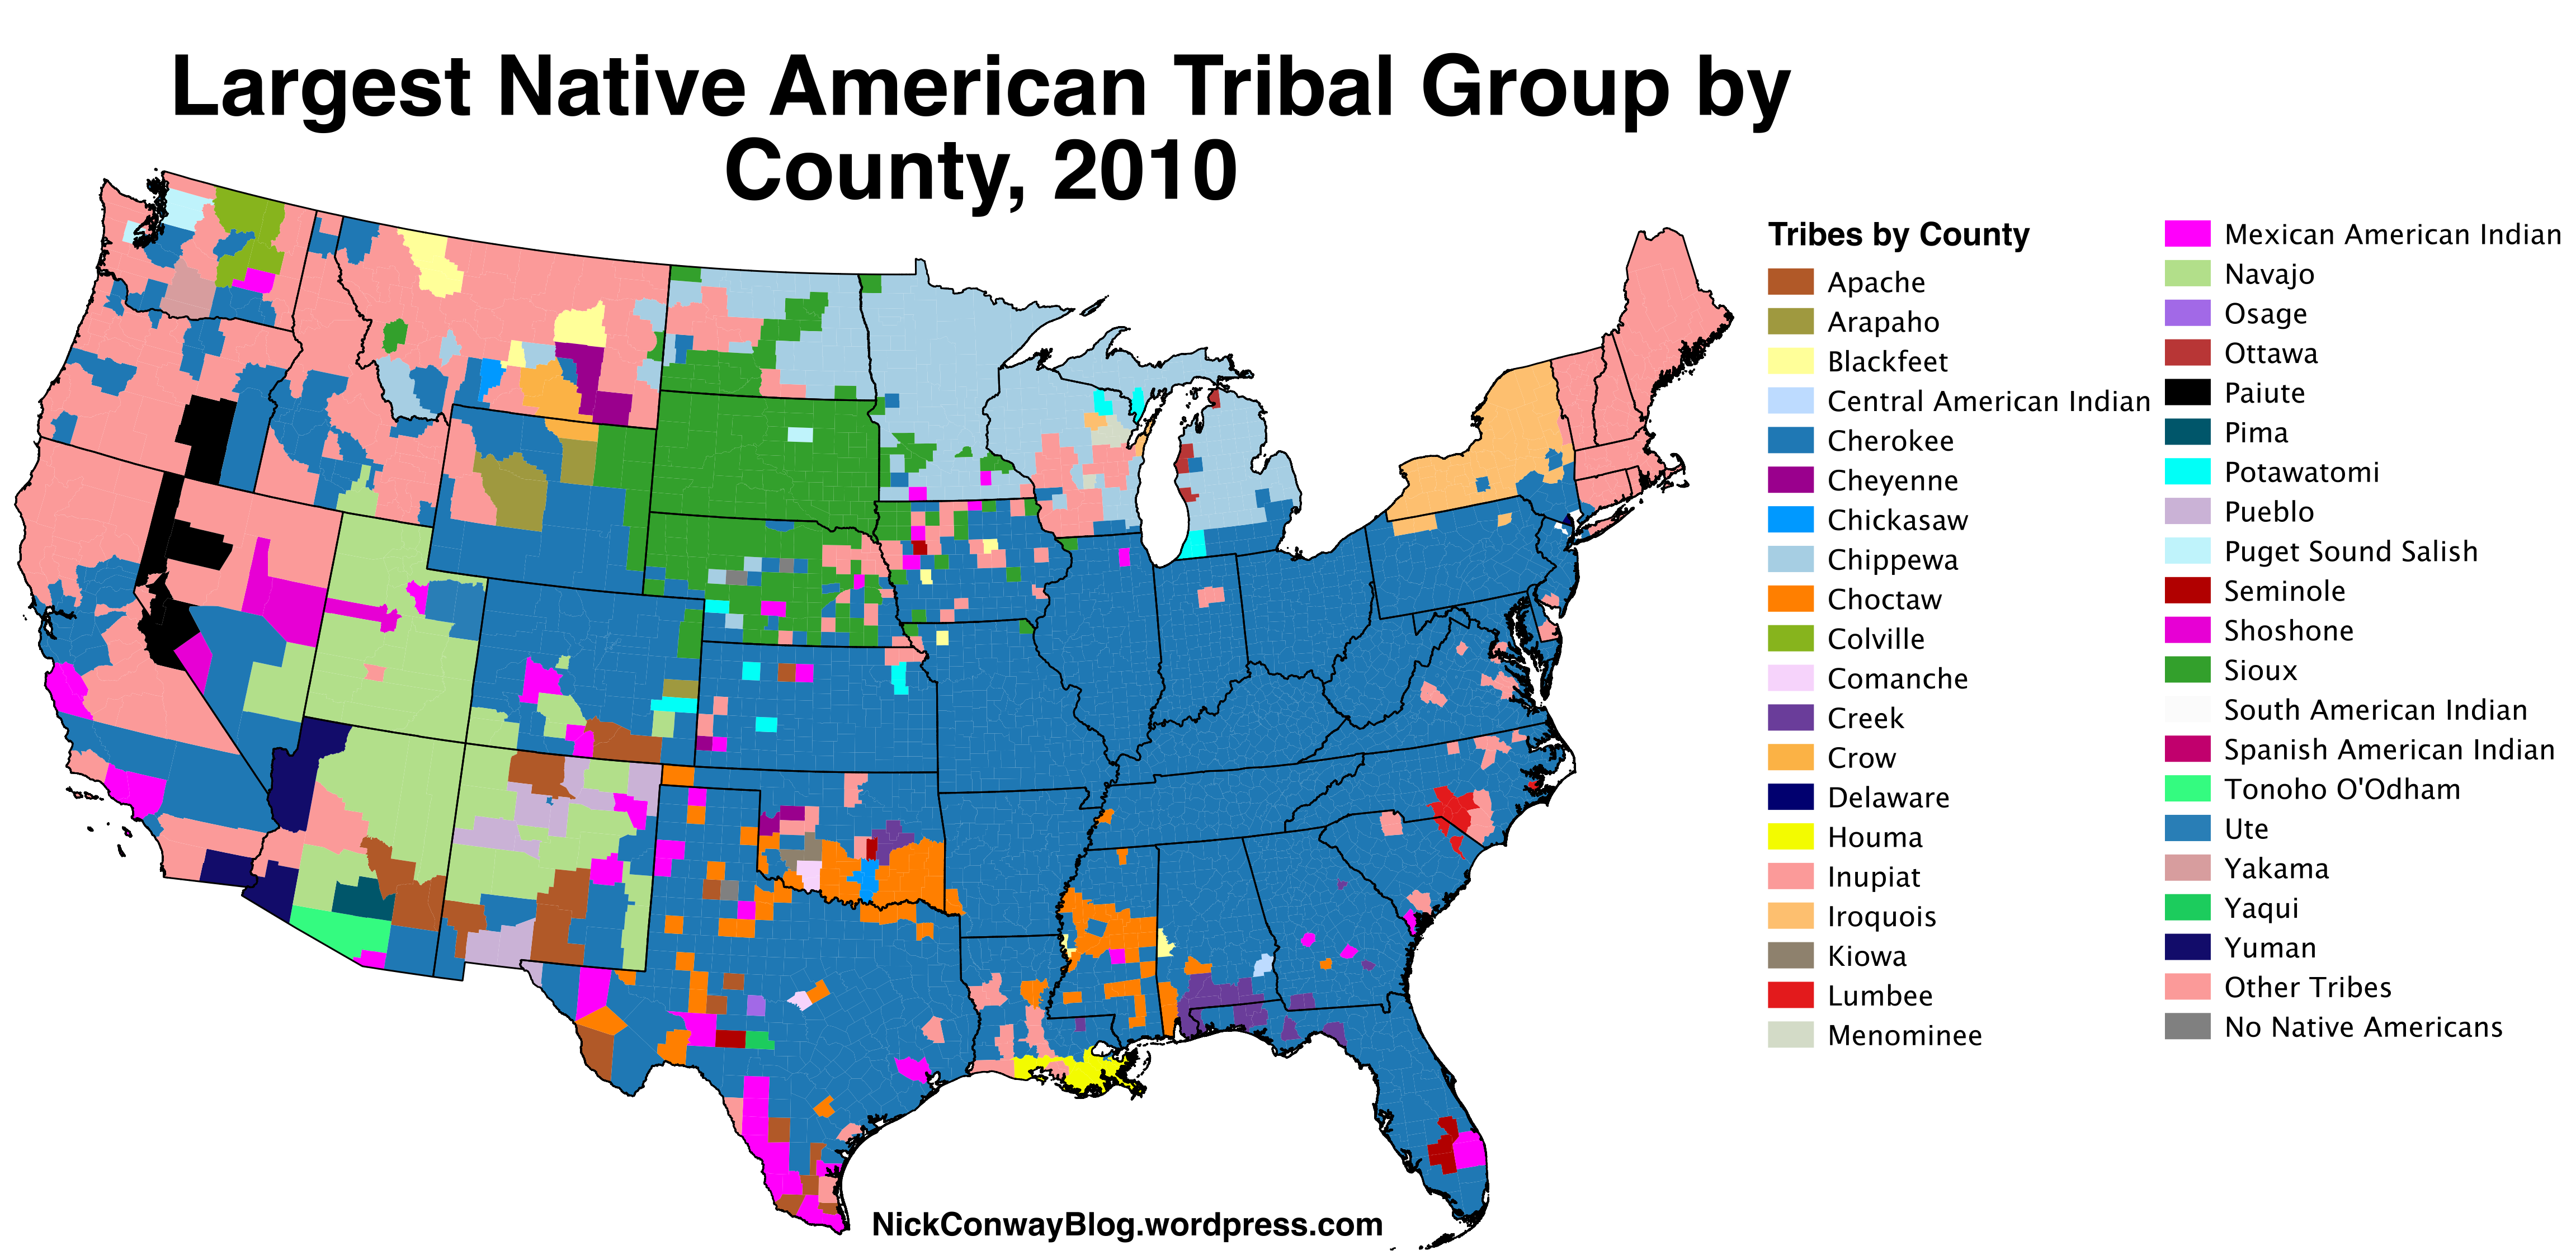 the challenge of getting along peacefully with the native american population Numerous atrocities against native americans span the hundreds of years from the first arrival of european explorers to the modern era under a wide range of circumstances.